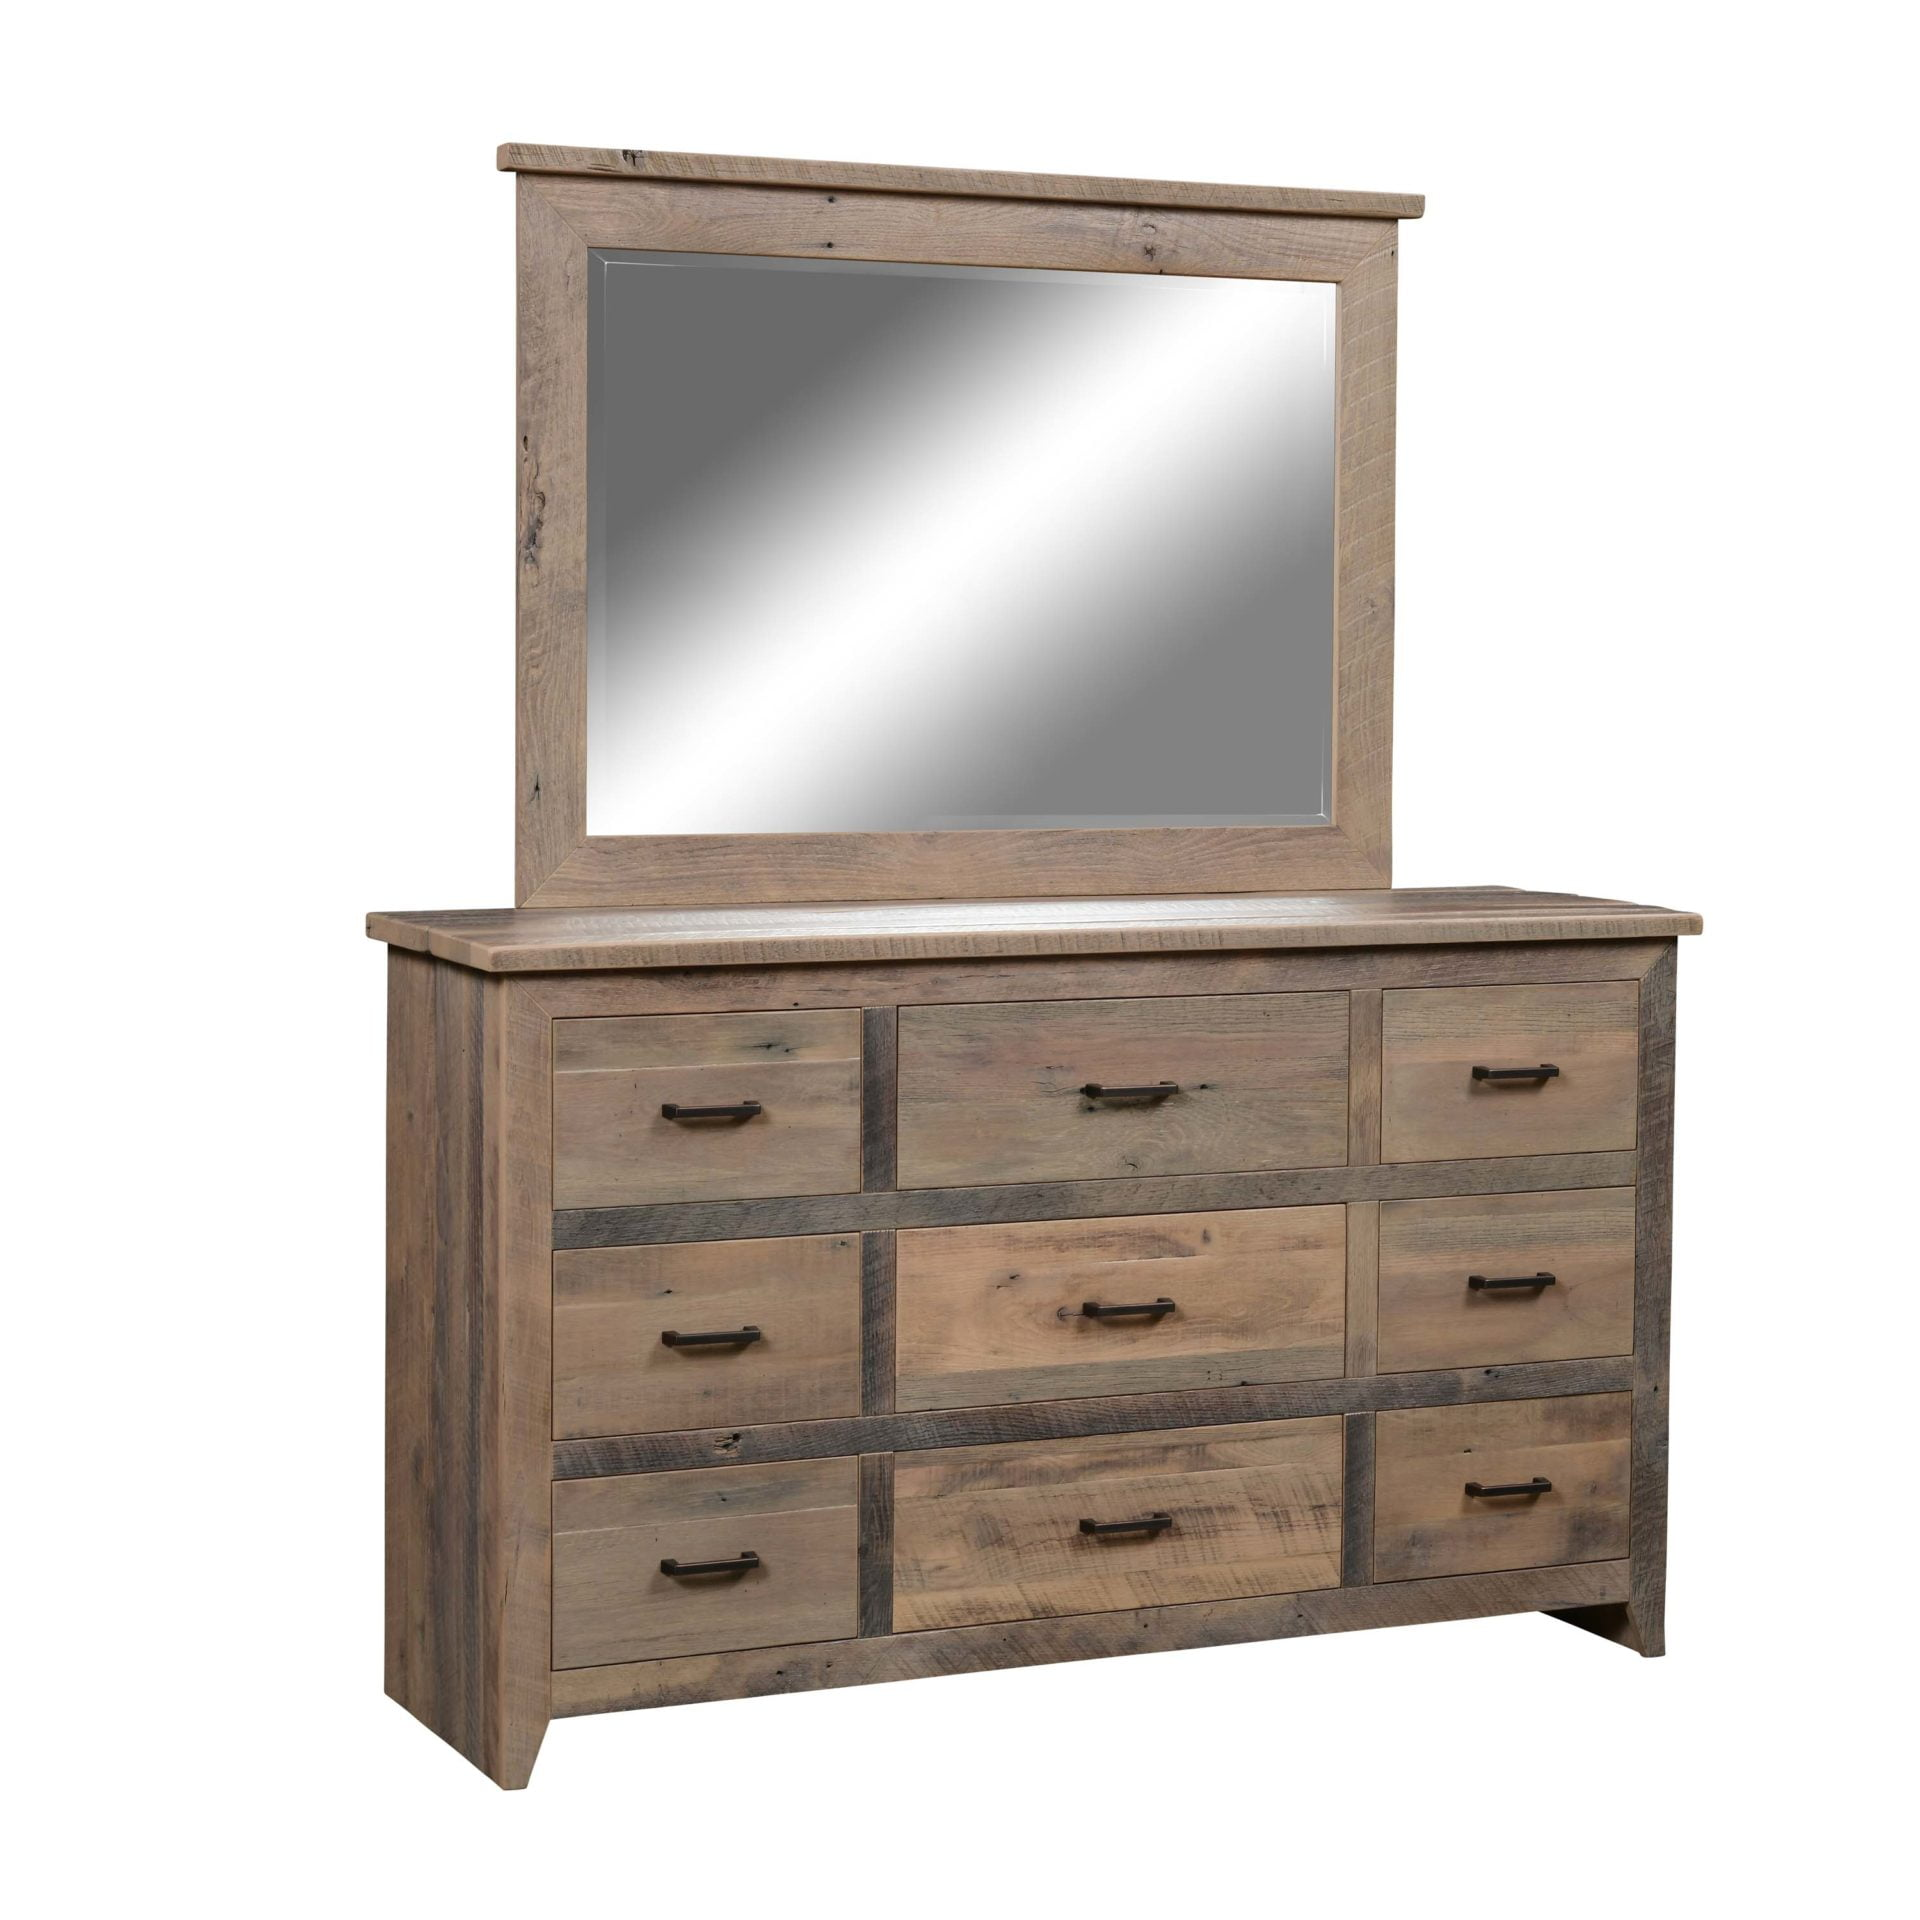 Midland 9 Drawer Dresser with Mirror LO RES